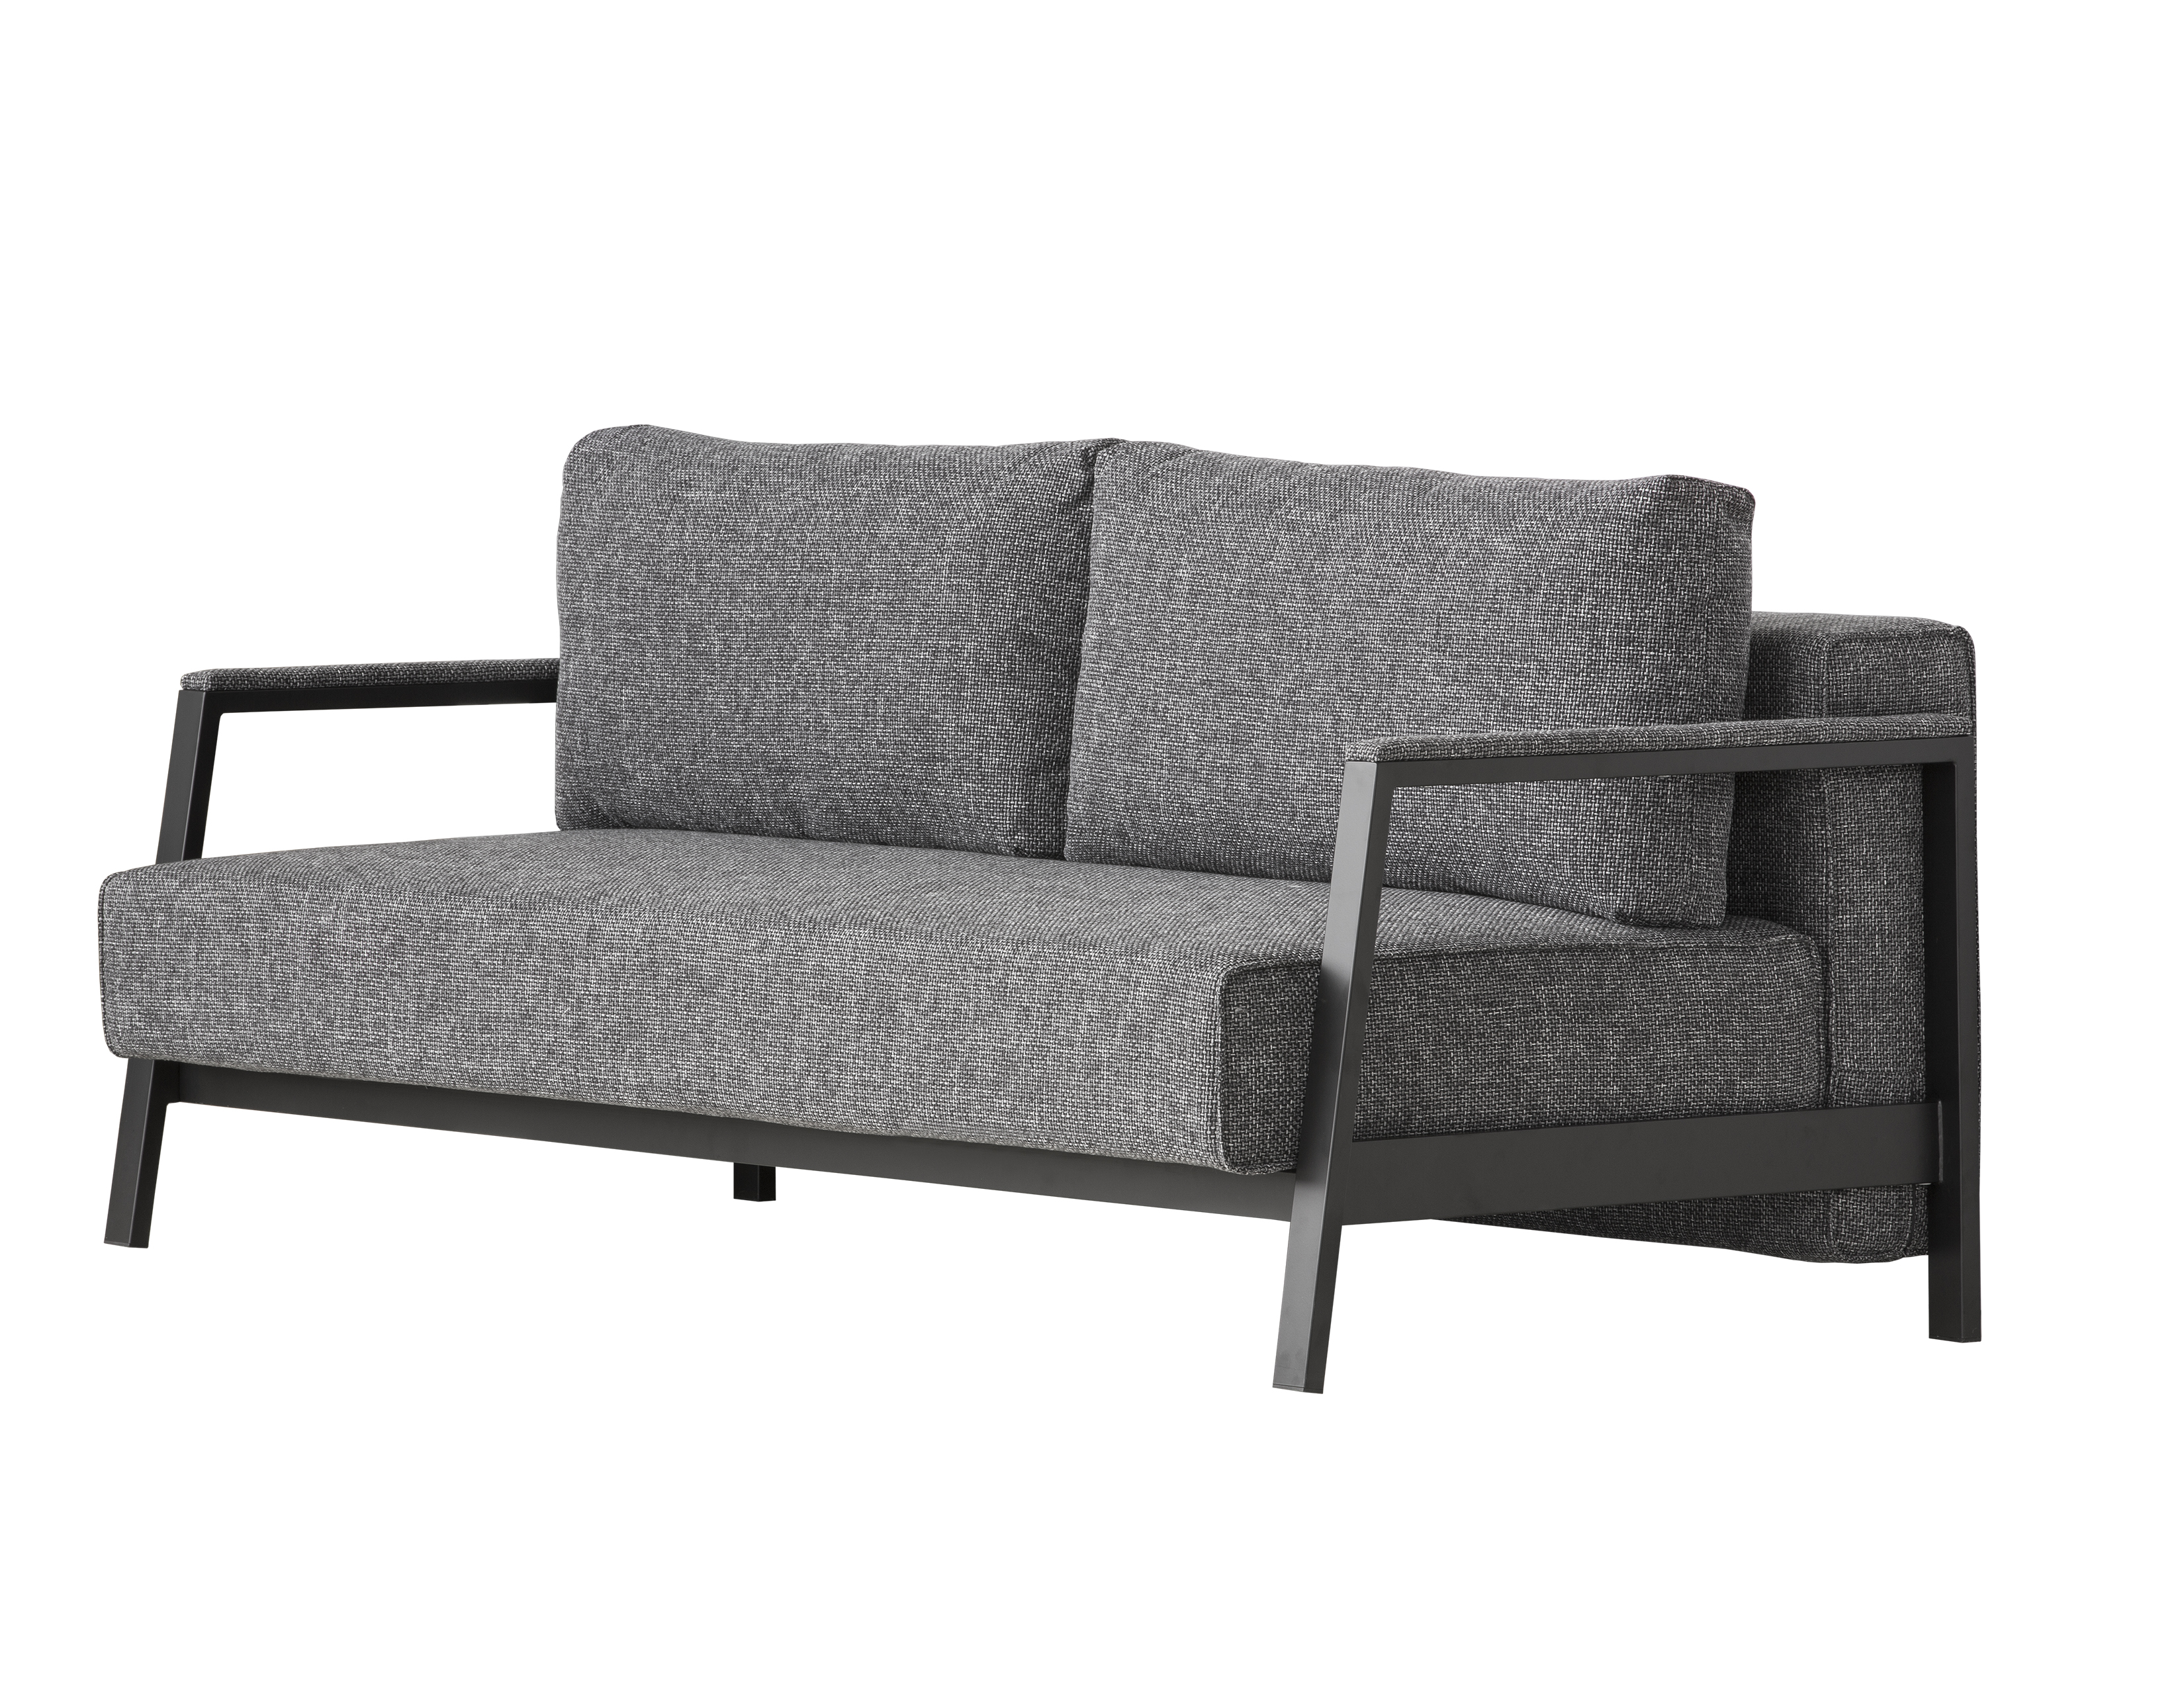 Davenport Double Sleeper Sofa Daybed Charcoal Weave With Black Powder Coated Steel